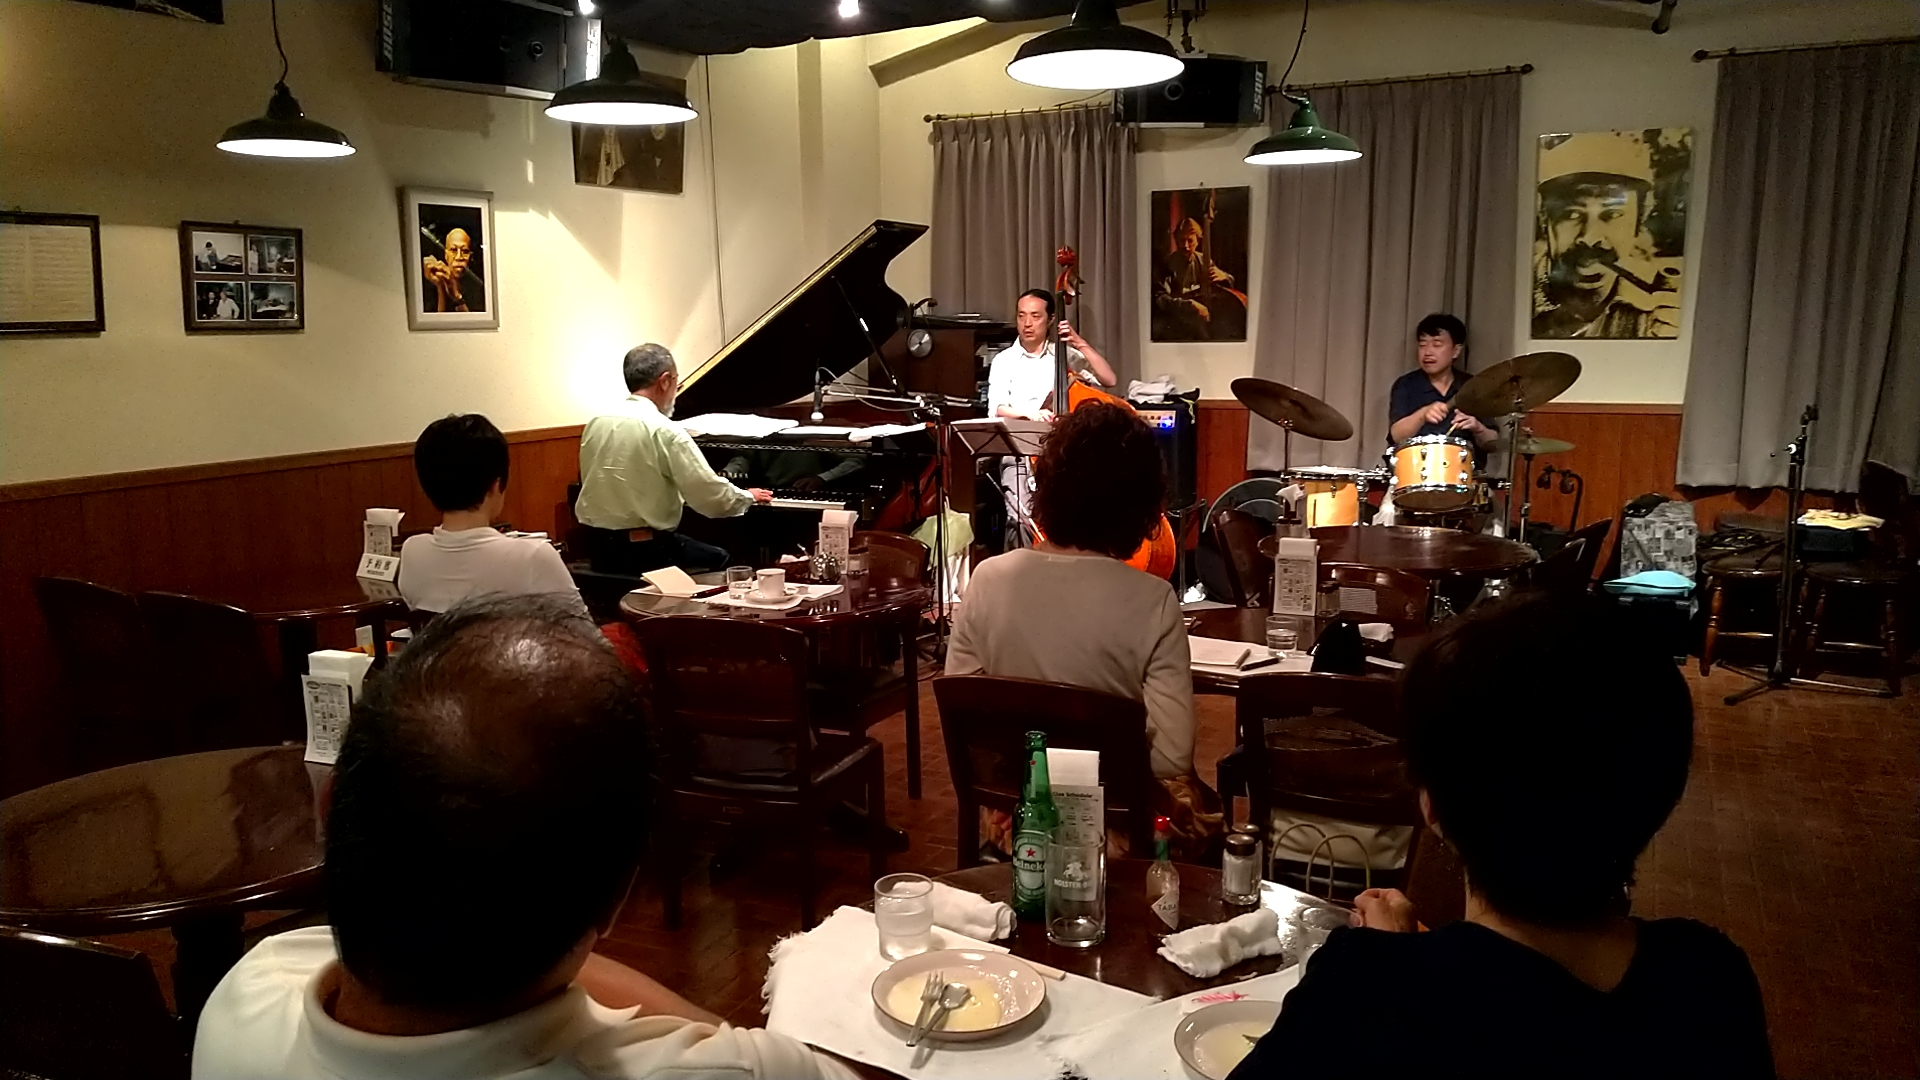 http://jazzclub-overseas.com/blog/jazz_club_overseas/20180825_212732502.jpg